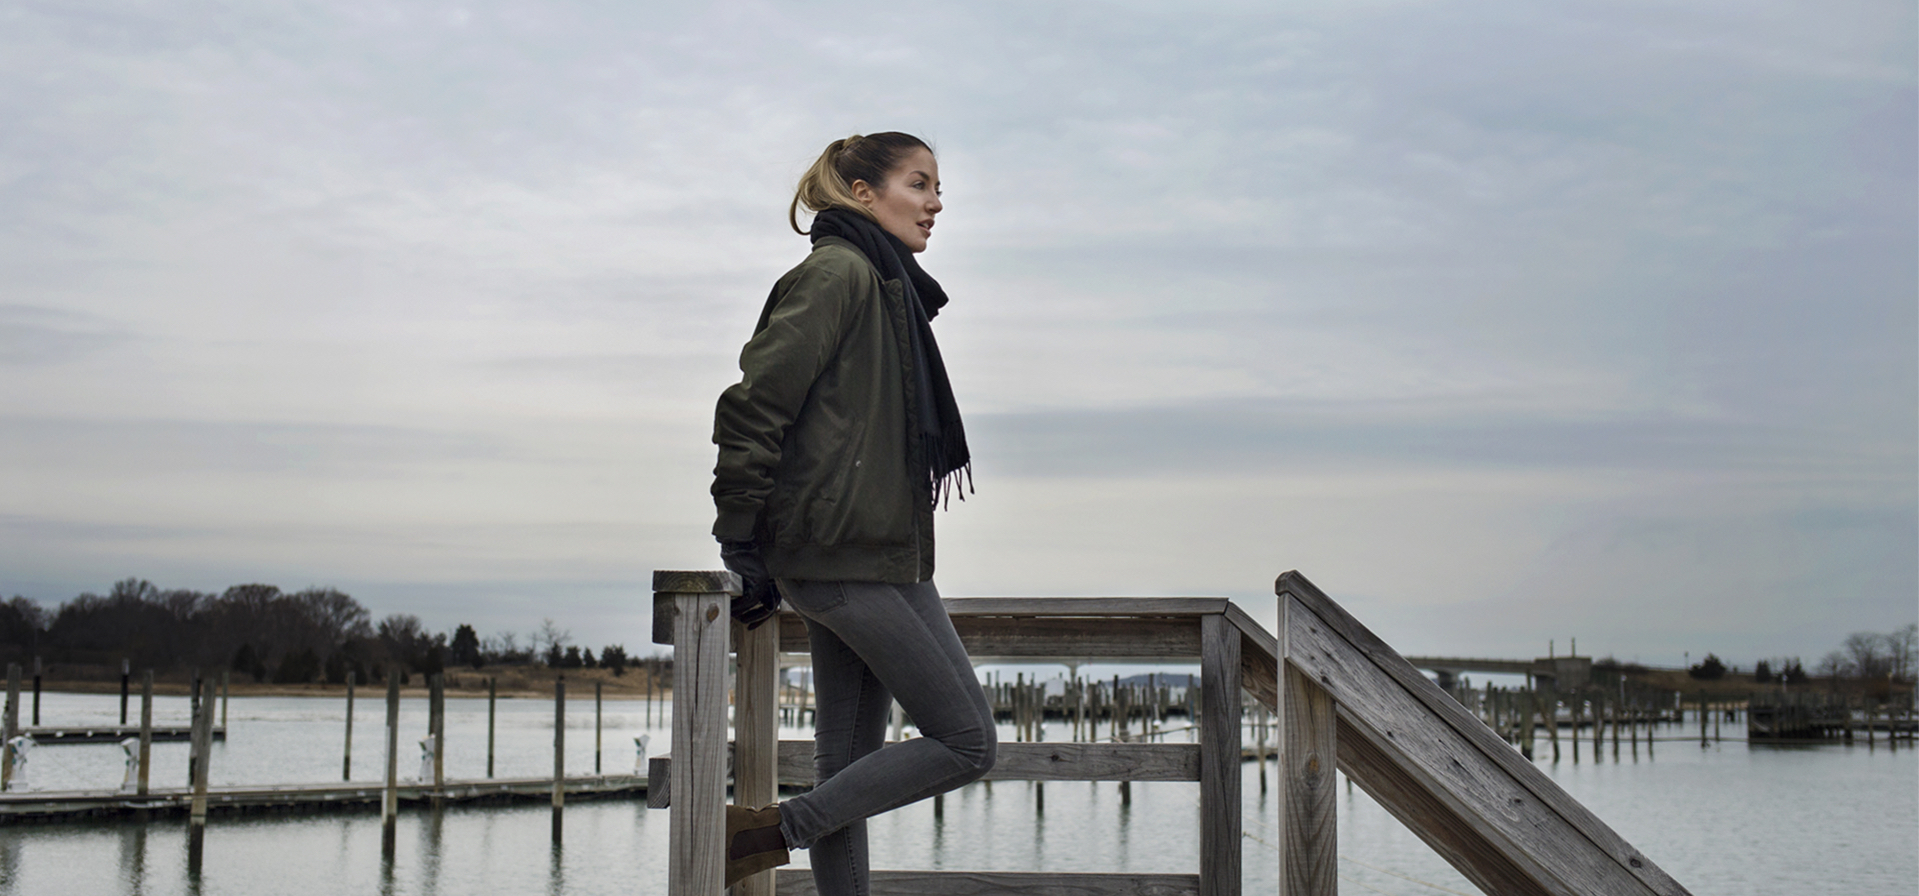 Taylor wearing an olive puffy jacket and standing on a dock in winter